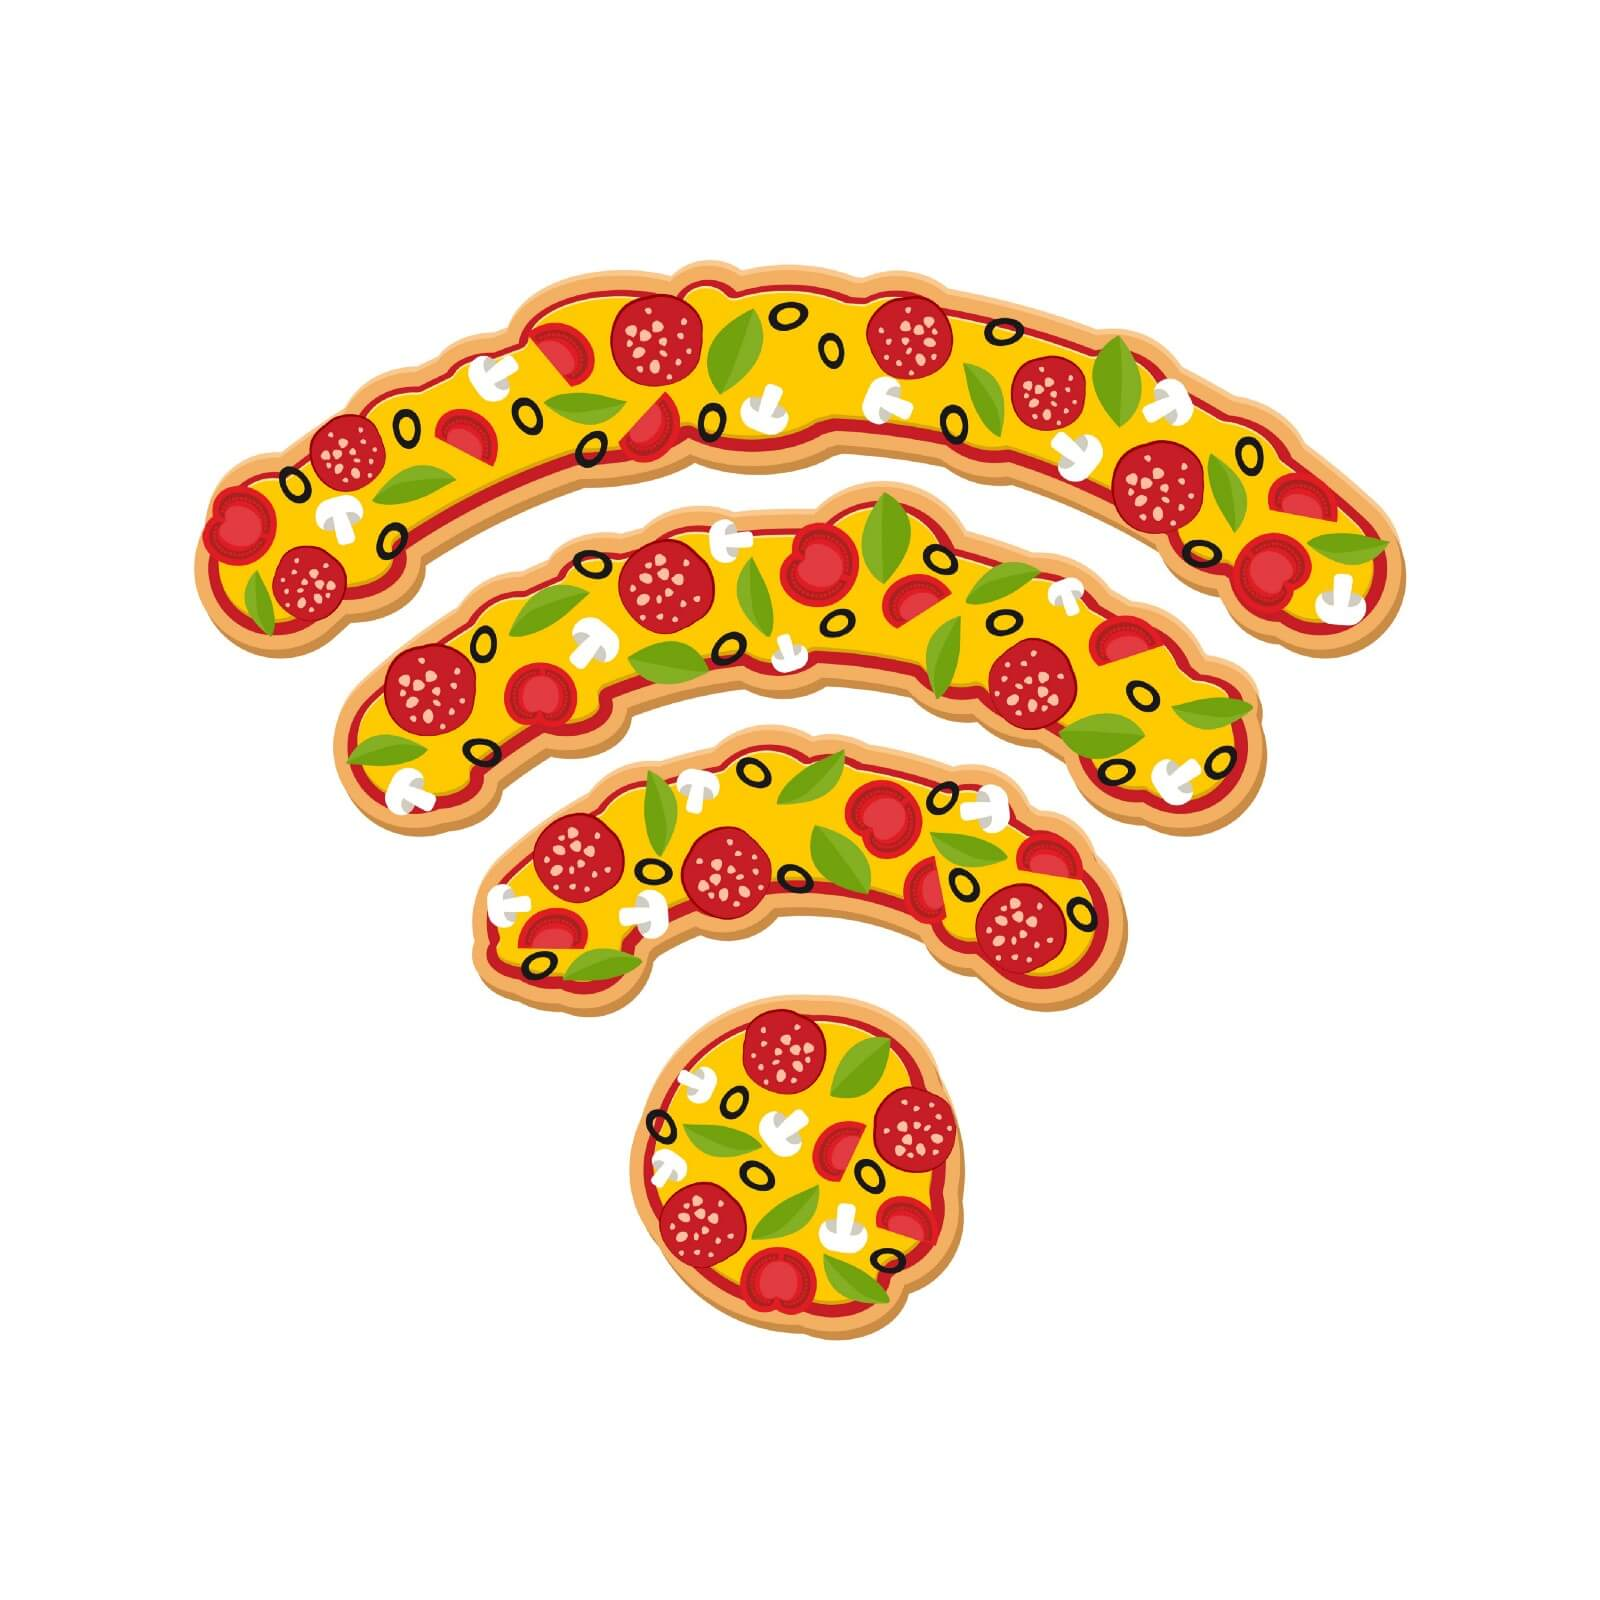 A network signal icon constructed from cartoon pepperoni pizza